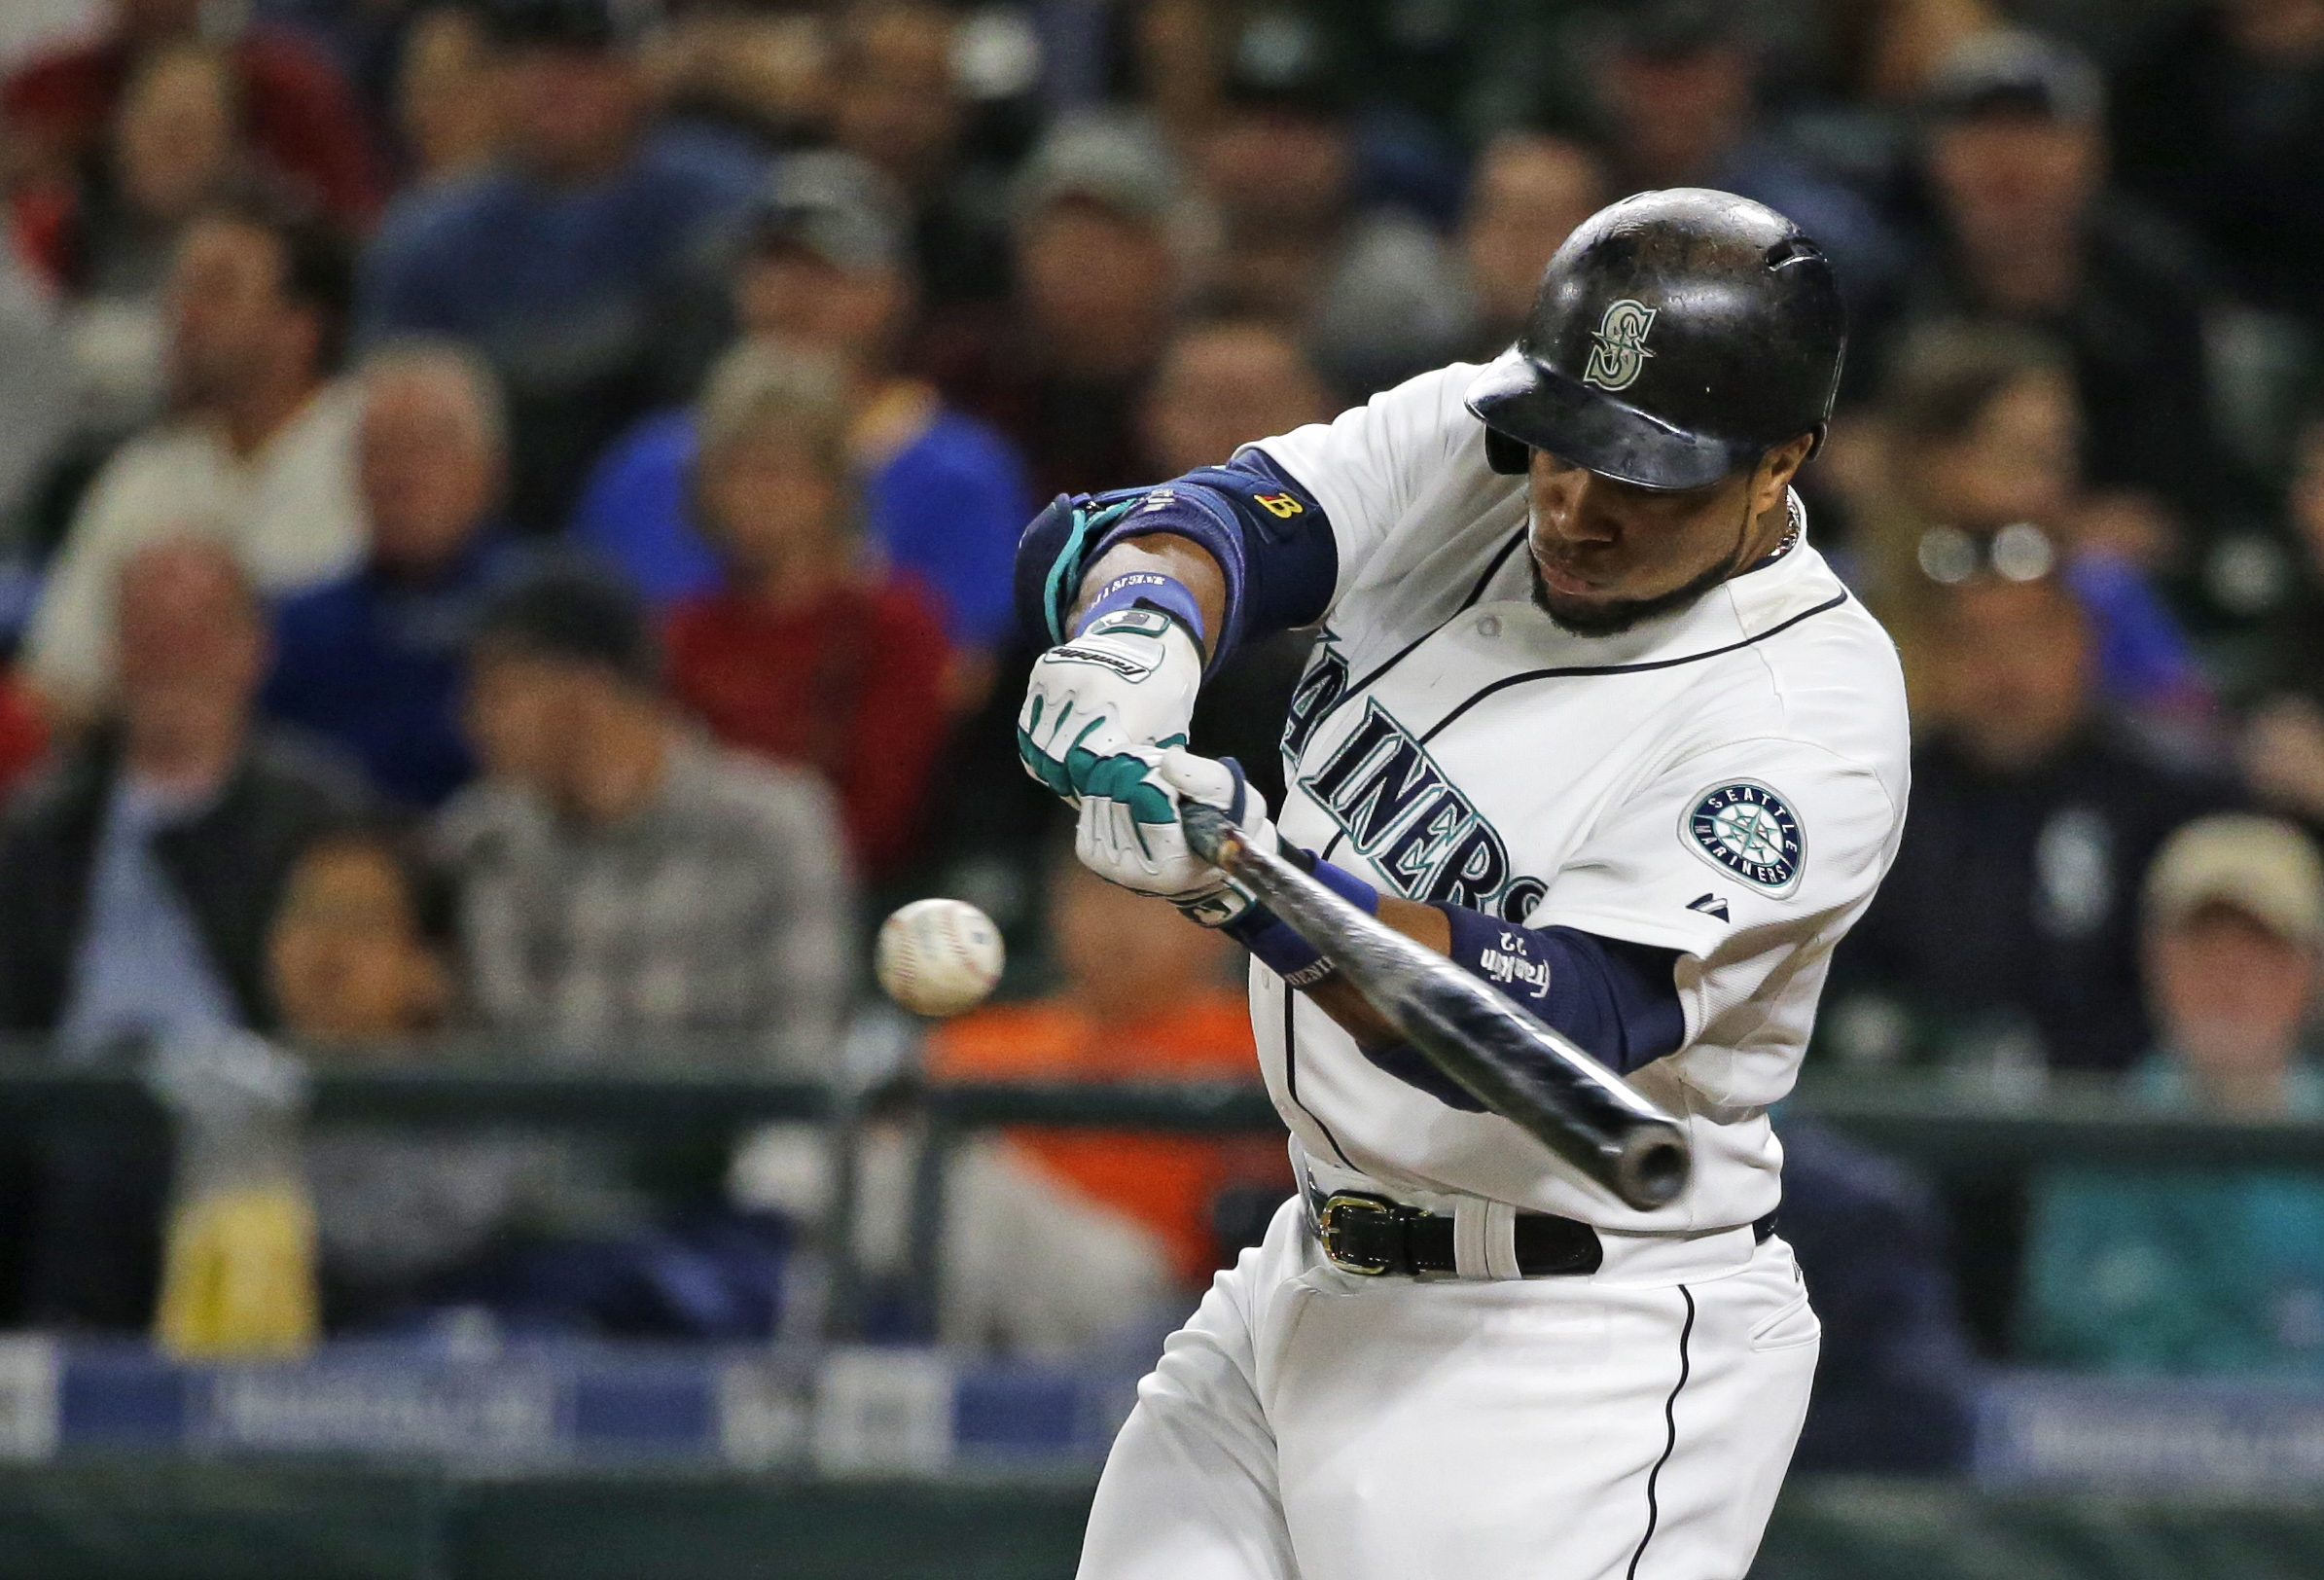 Seattle Mariners' Robinson Cano hits a sacrifice fly to score Kyle Seager in the first inning of a baseball game against the Houston Astros, Tuesday, Sept. 29, 2015, in Seattle. (AP Photo/Ted S. Warren)